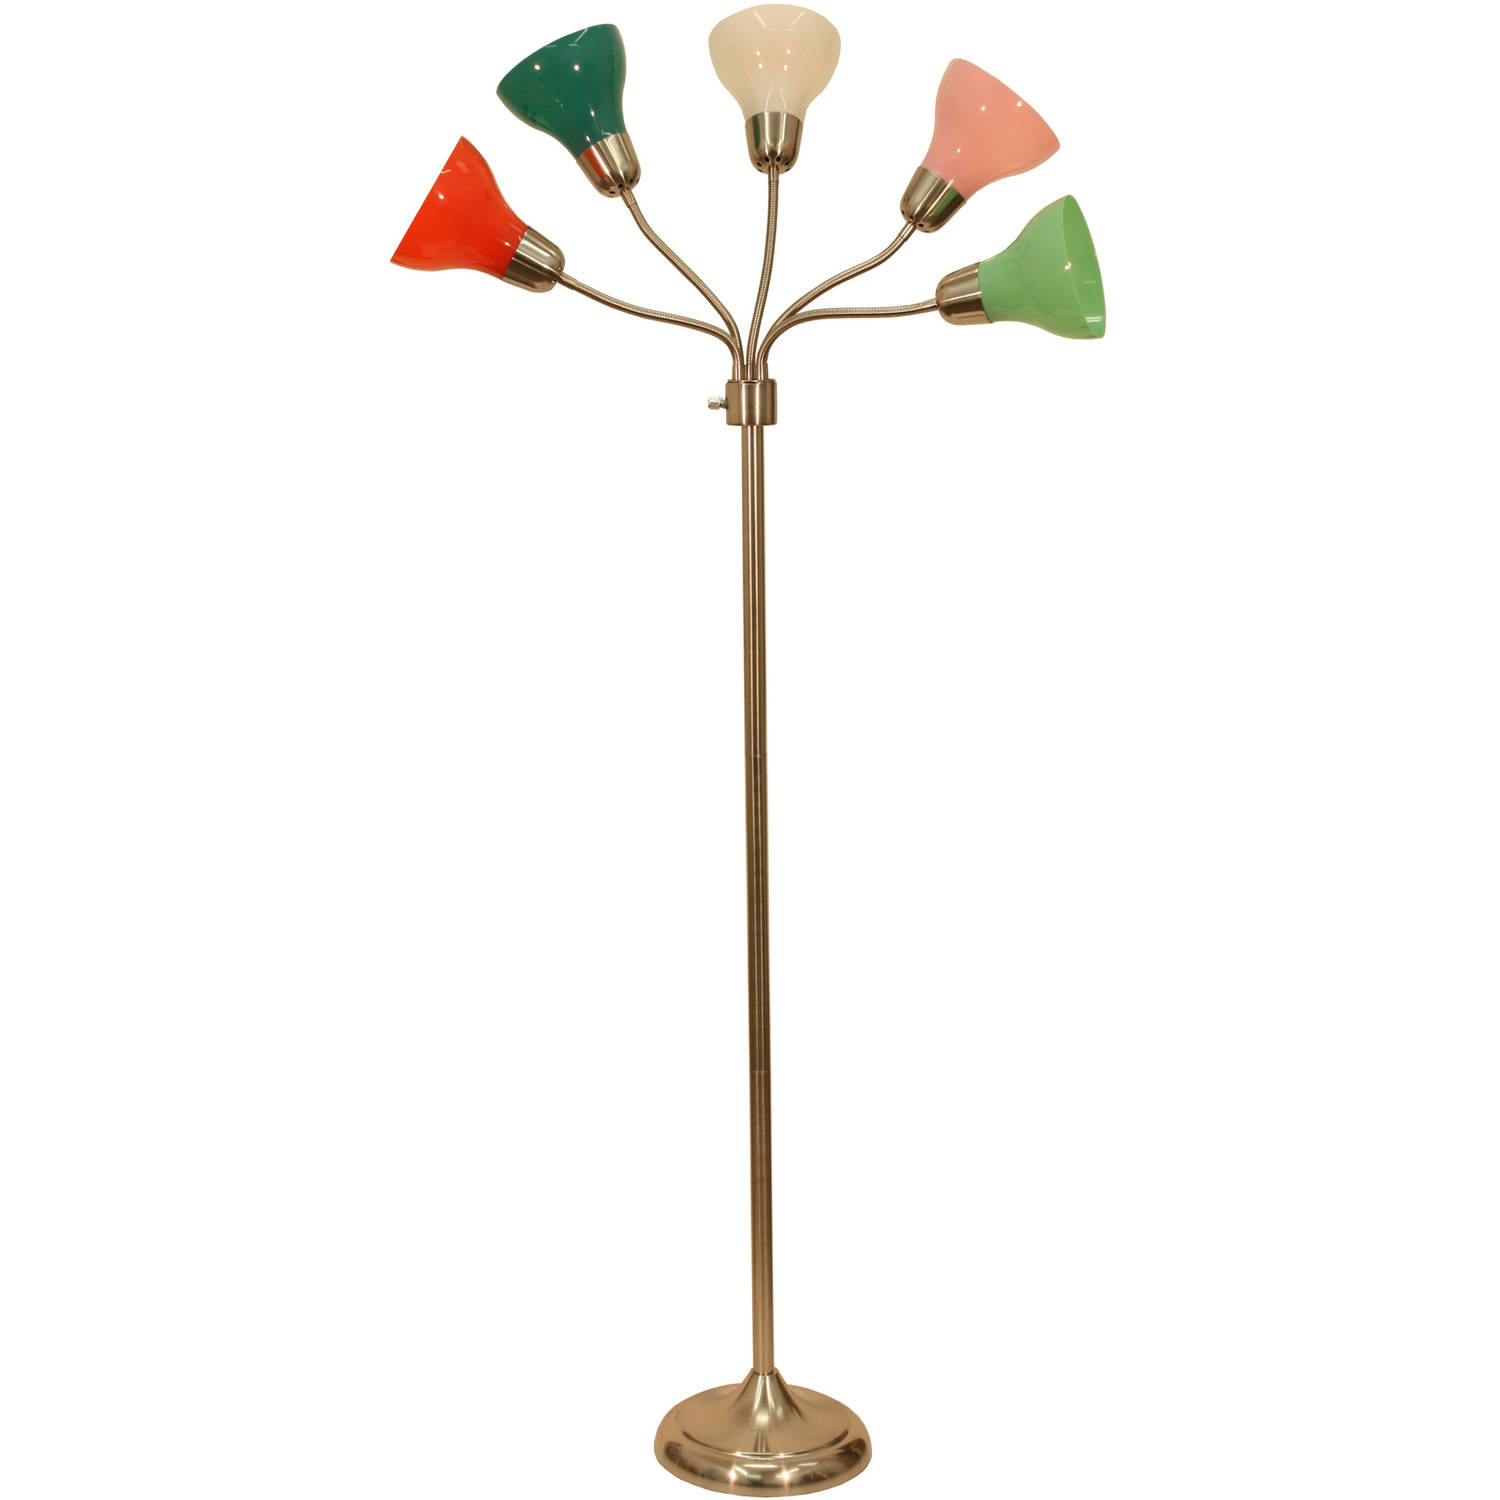 5 Light Floor Lamp with Multi-Colored Shades by Jimco Lamp